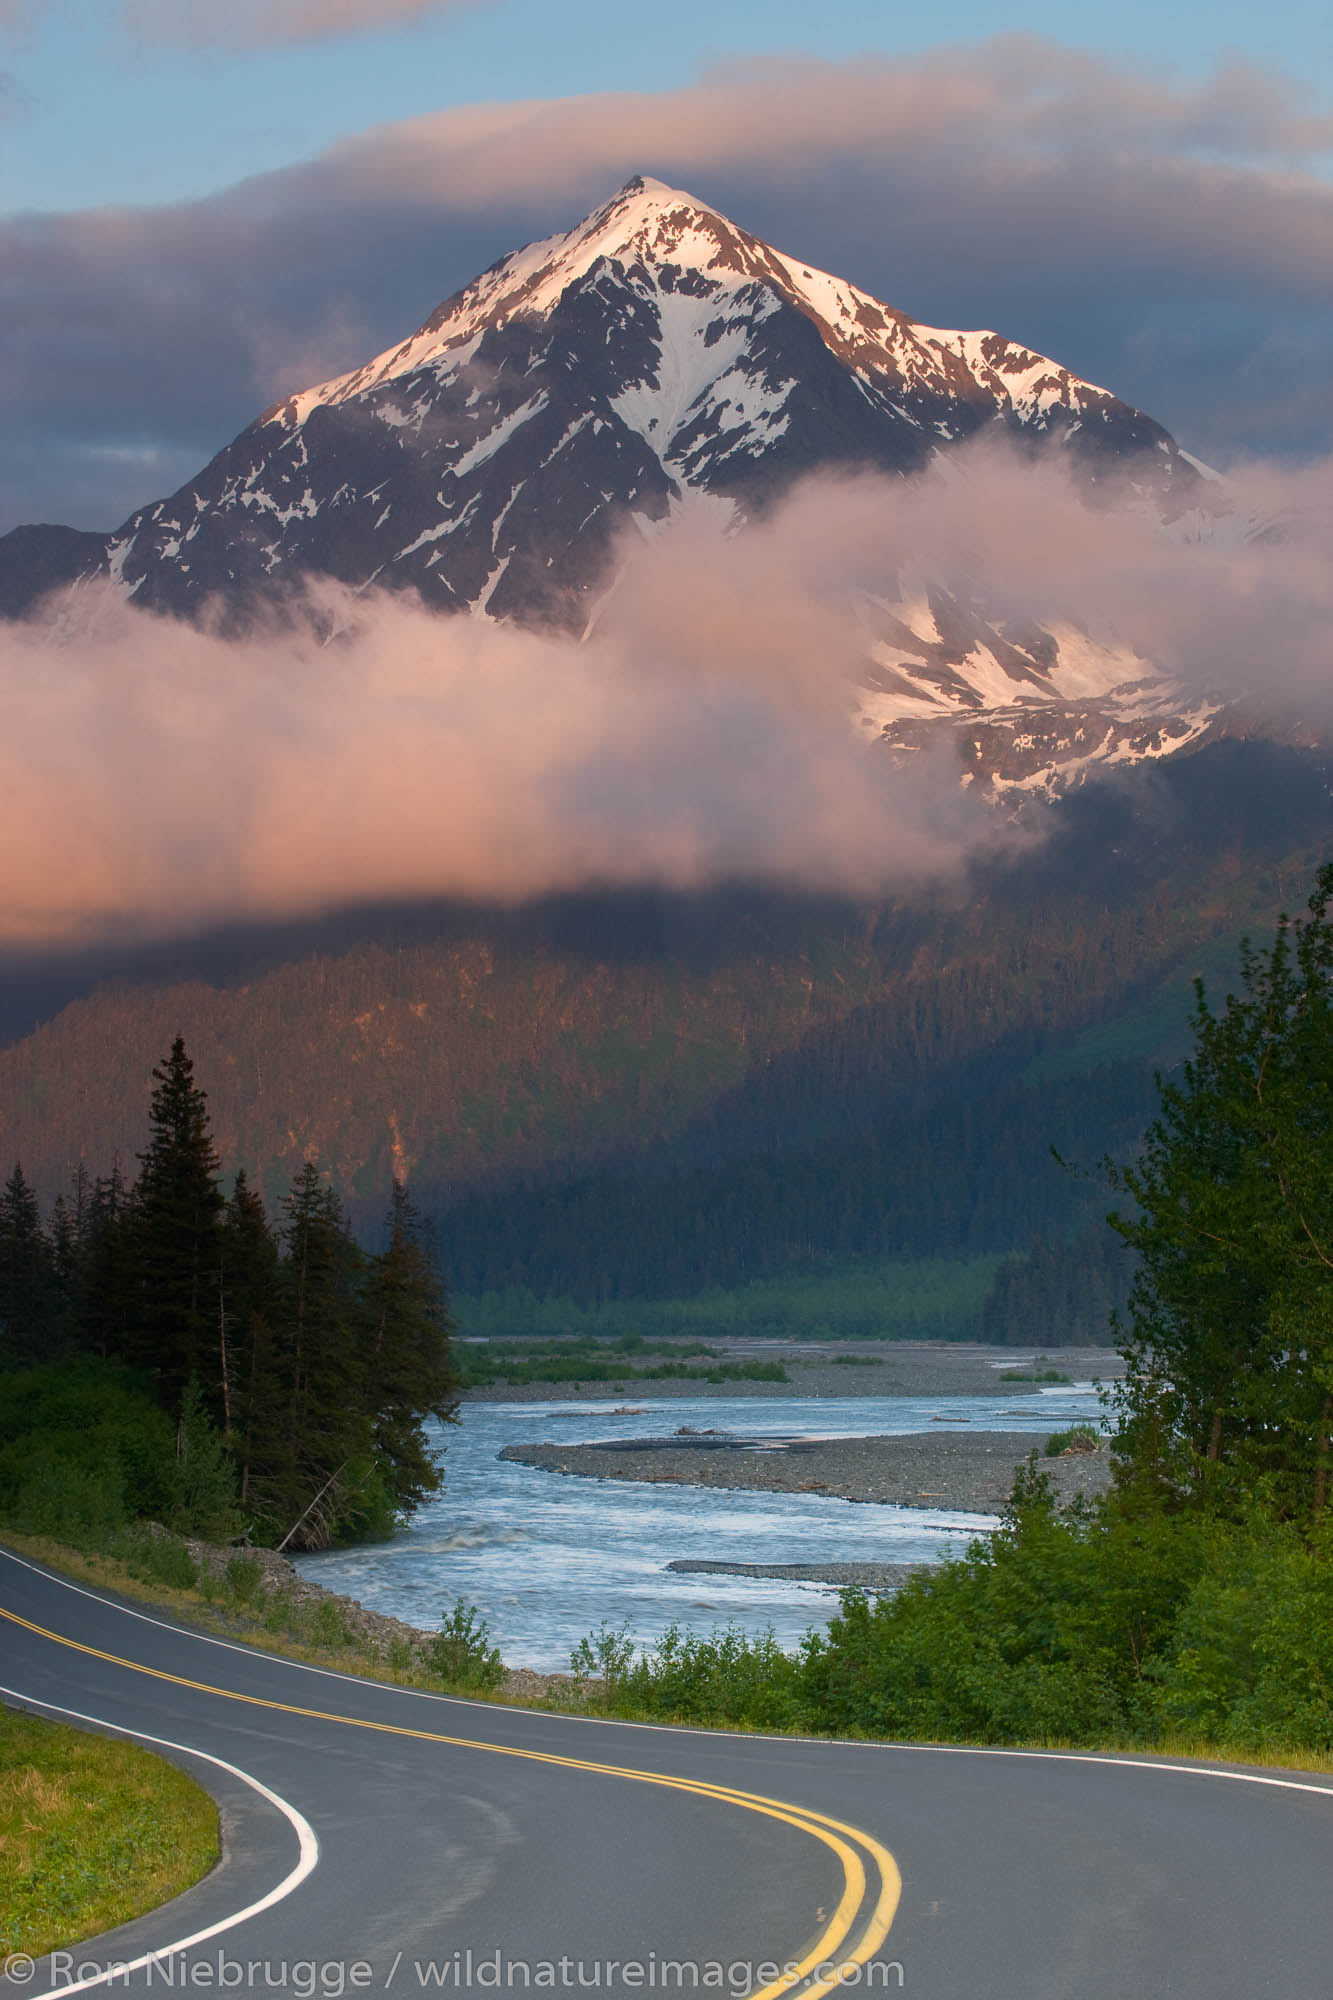 Mount Benson and the Resurrection River, near the border between Kenai Fjords National Park and the Chugach National Forest...